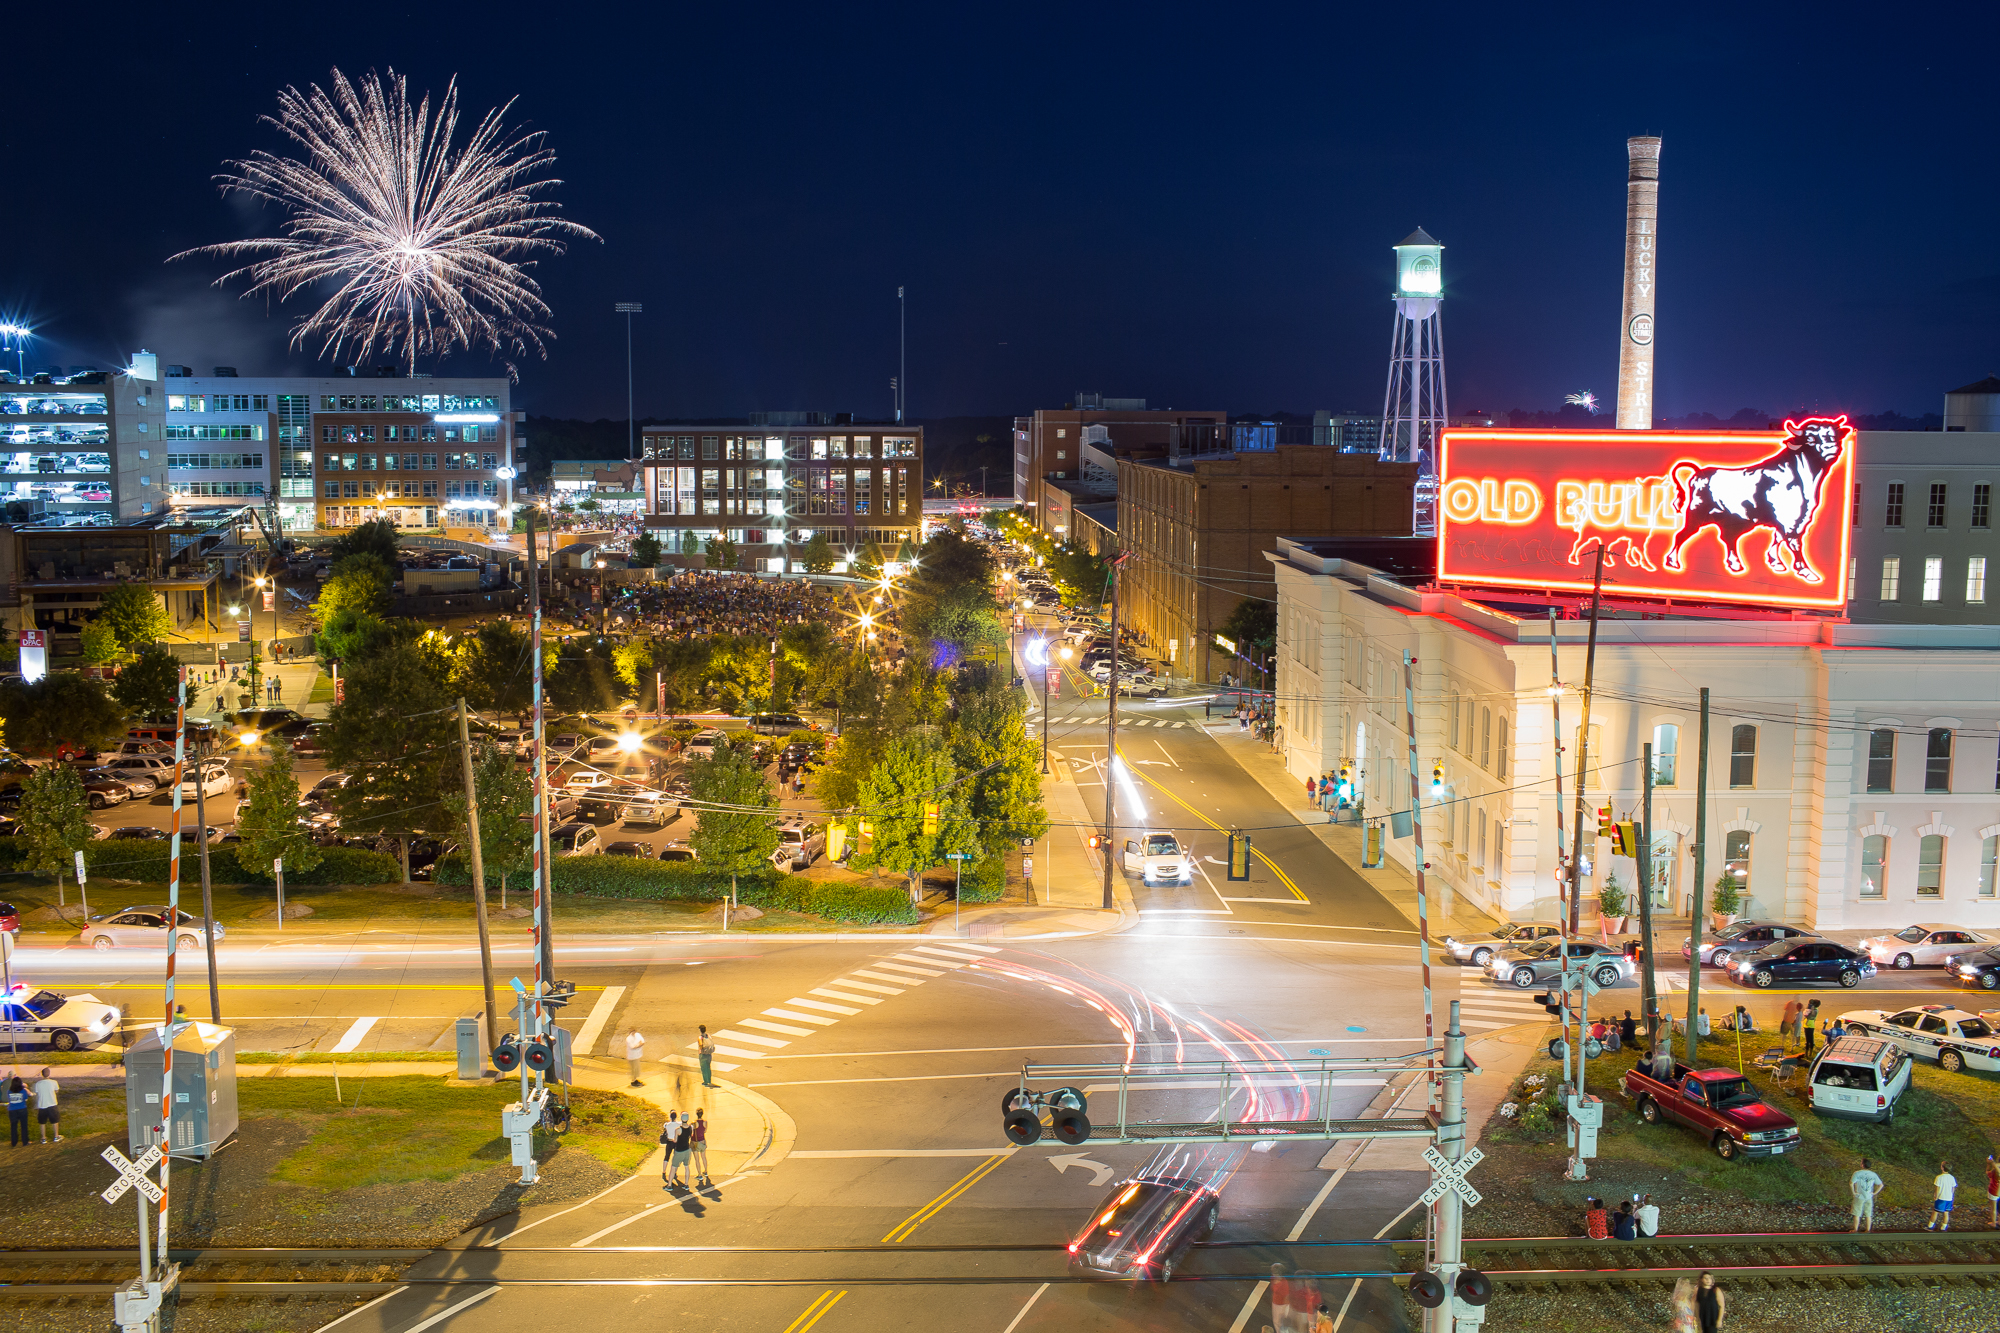 Fireworks burst over the Durham Bulls Athletic Park in revitalized downtown Durham, N.C. on Independence Day, July 4, 2014.